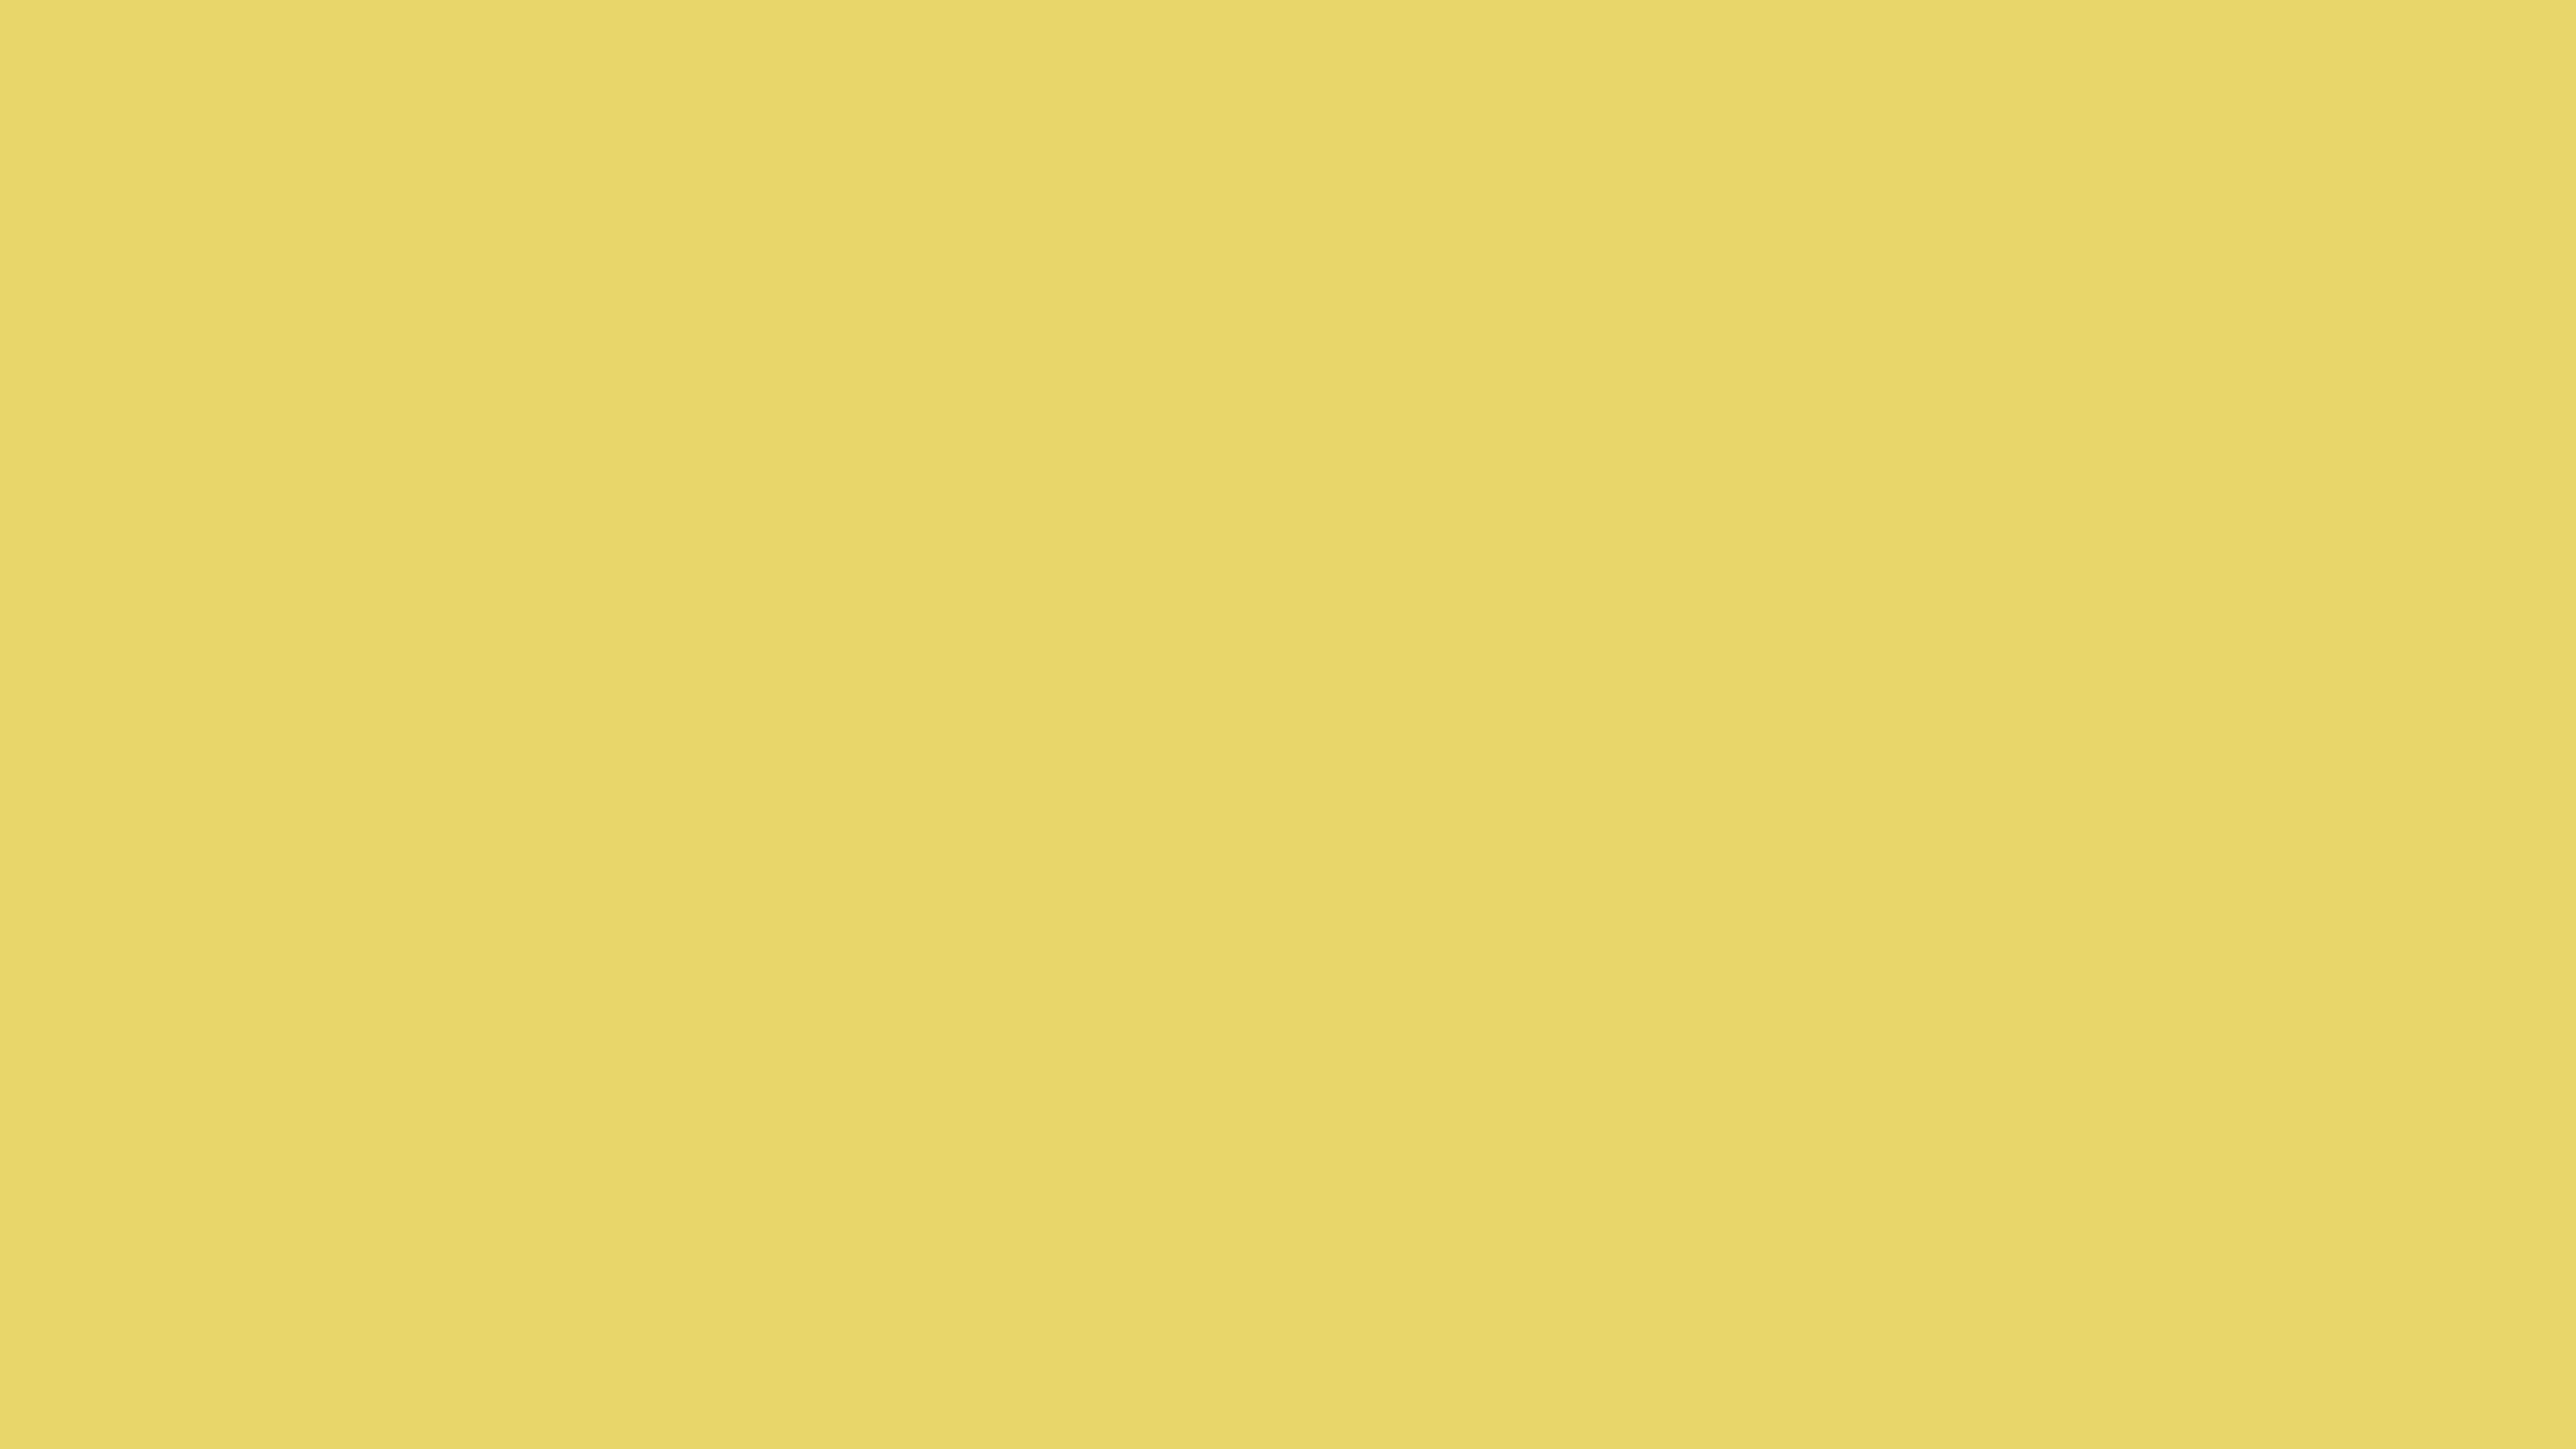 4096x2304 Arylide Yellow Solid Color Background